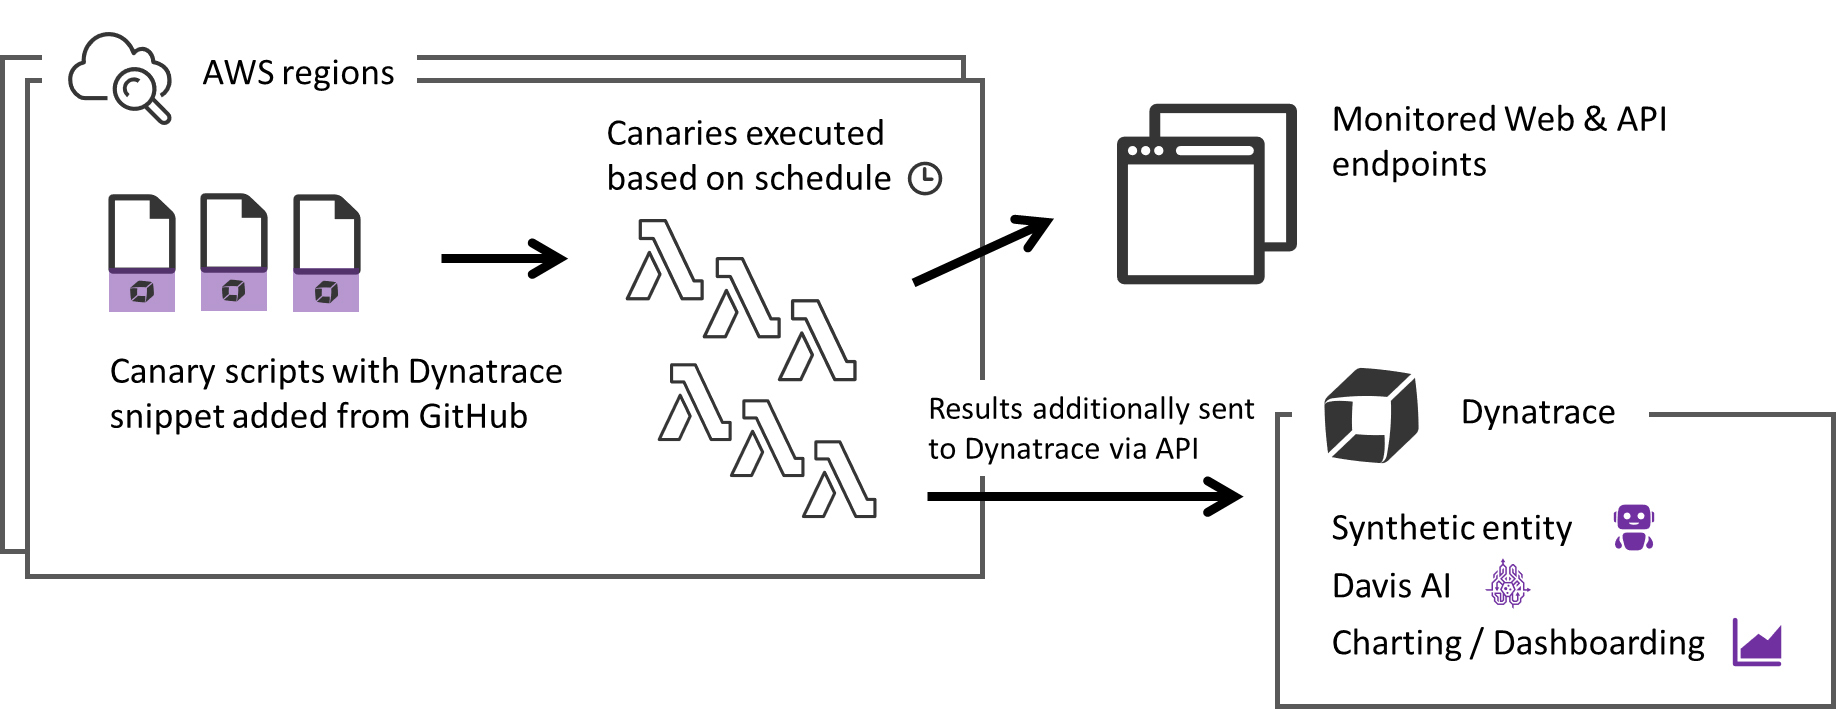 Canaries monitor endpoints and simultaneously send results to Dynatrace